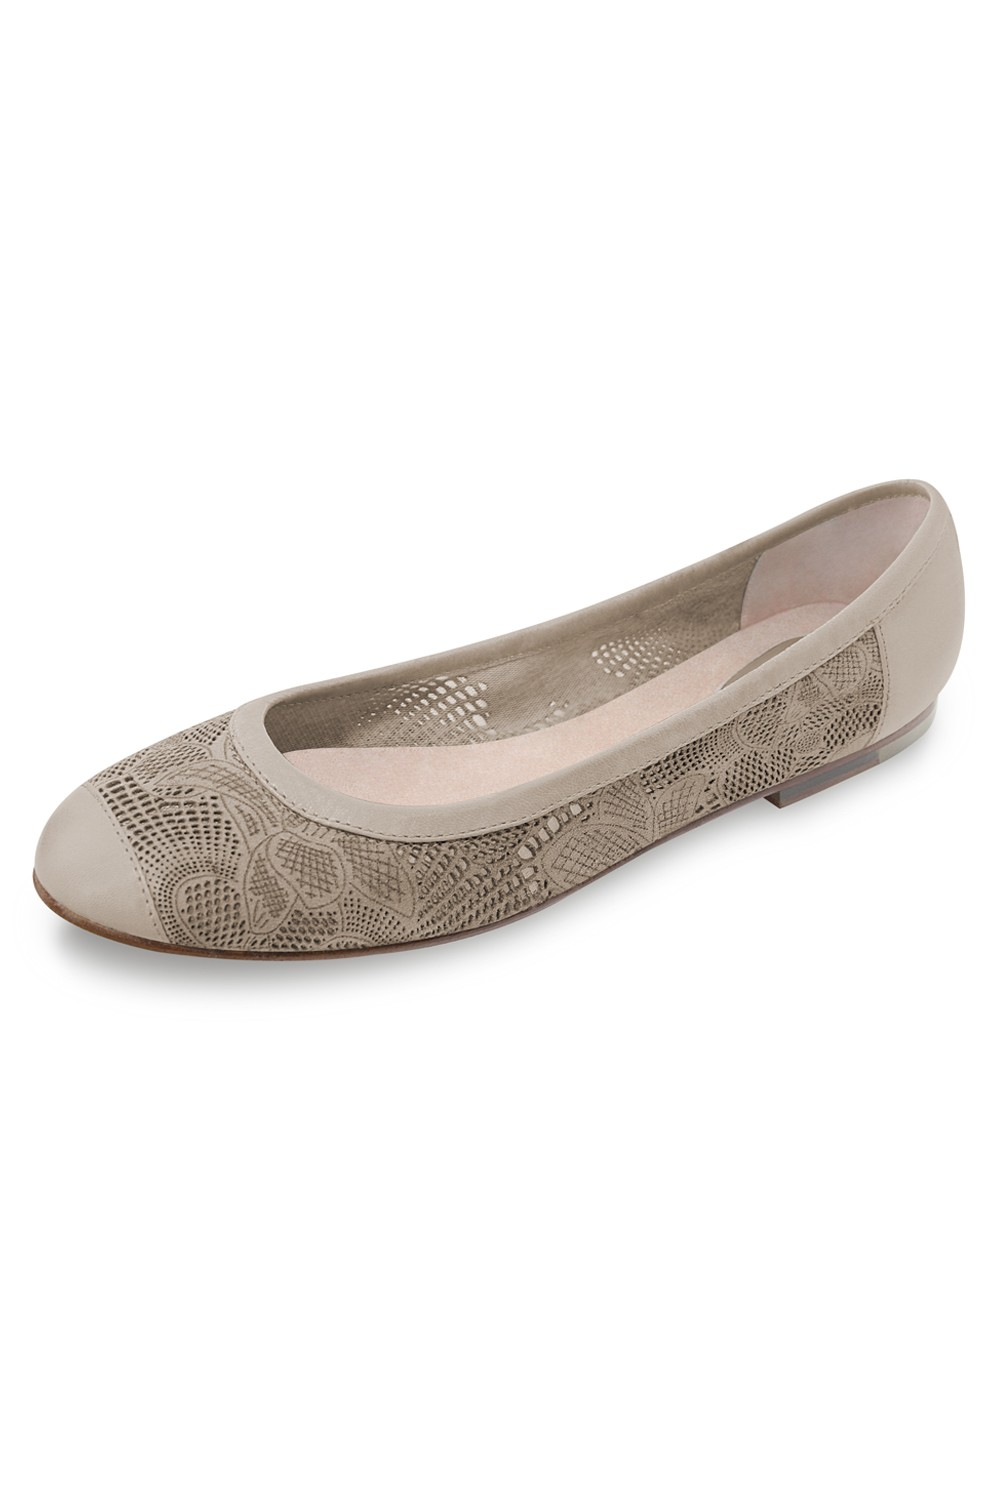 Liberty Ladies Ballet Shoe  Womens Fashion Shoes